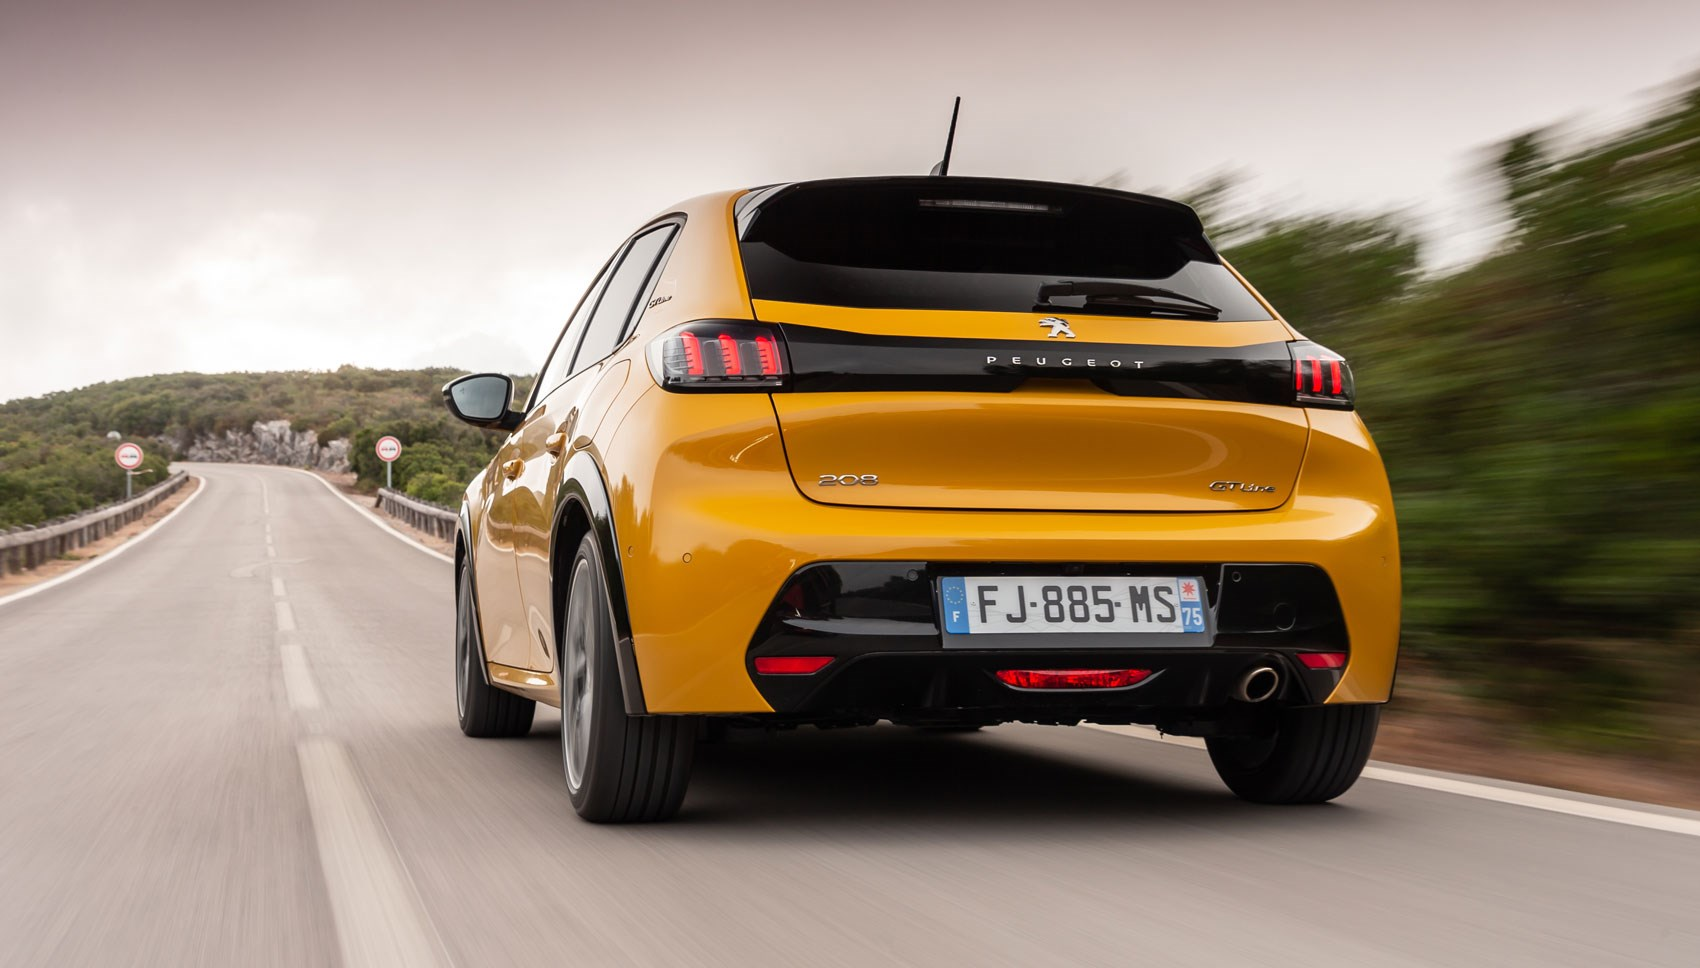 Peugeot 208 rear tracking